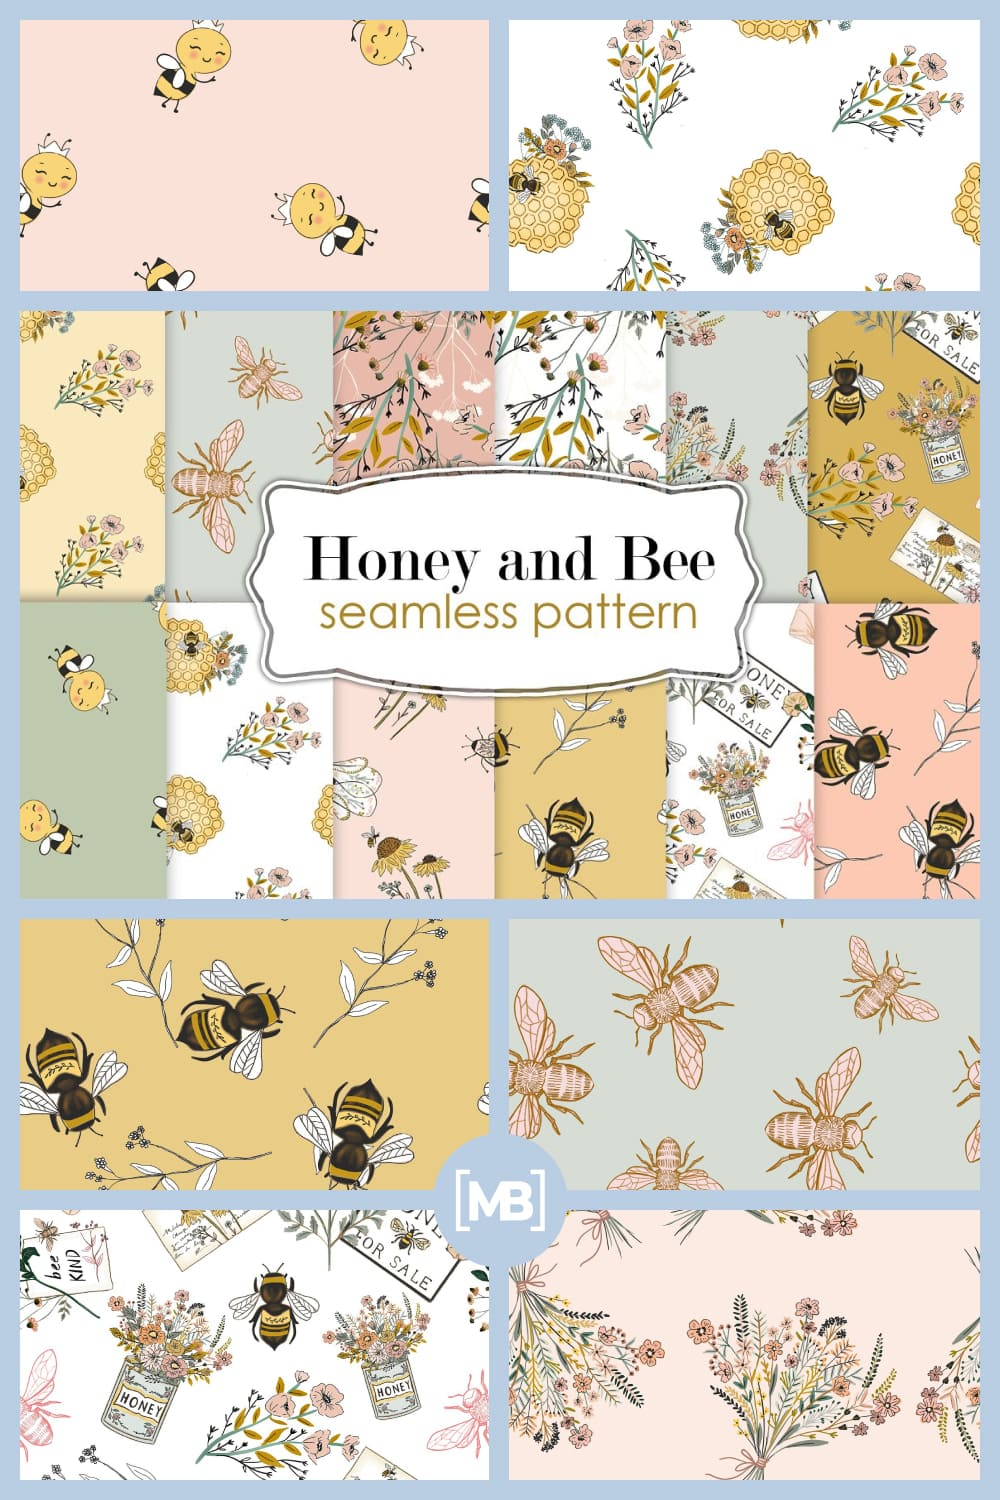 Honey and Bee Seamless Patterns.